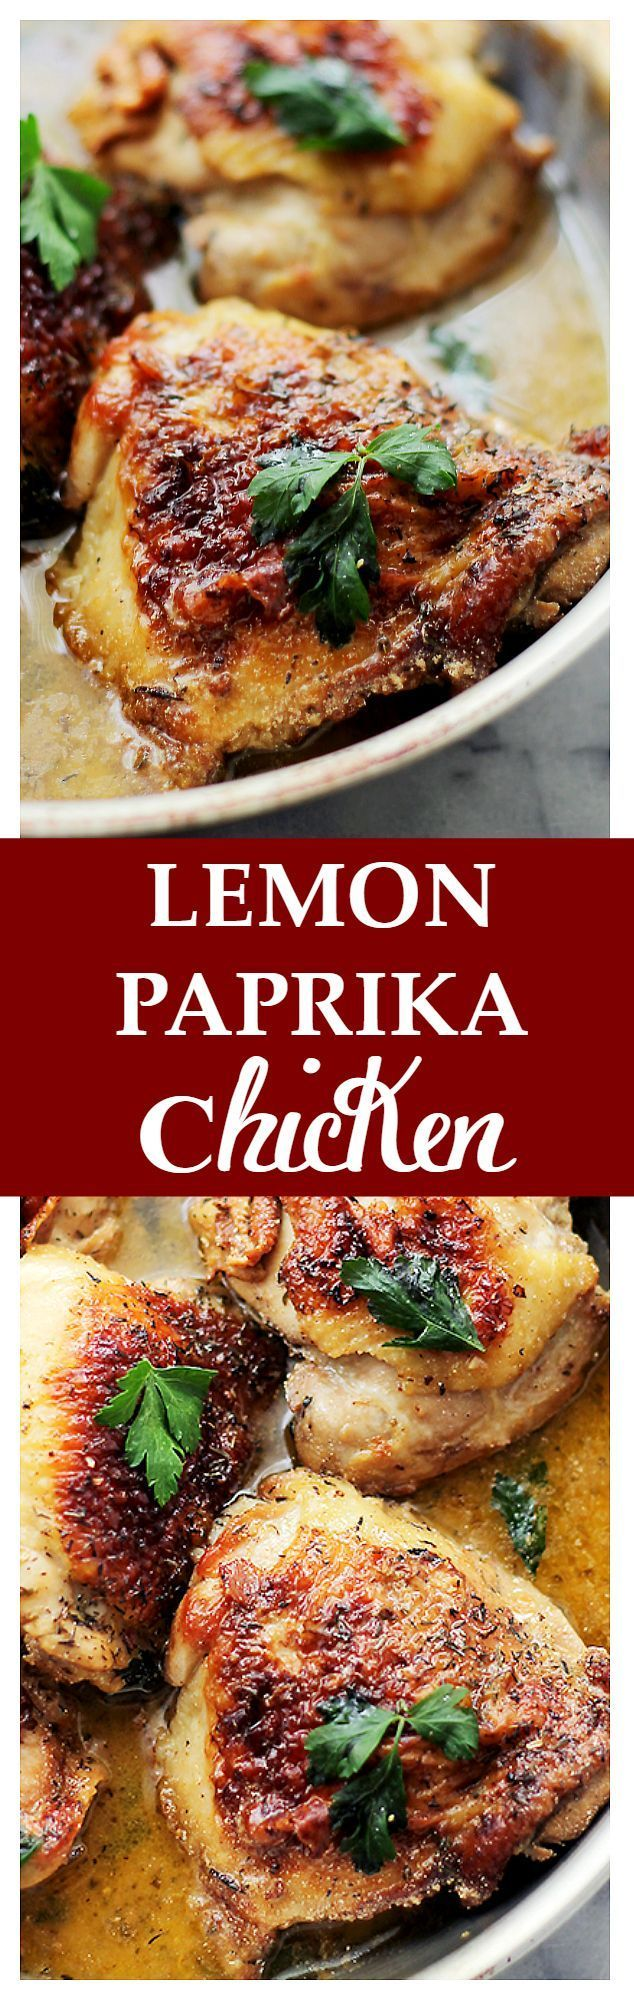 Lemon Paprika Chicken   www.diethood.com   Marinated in a lemon and paprika mixture with garlic and thyme, these incredible chicken thighs are quick and easy to make, and they are perfect for a weeknight meal.   #chicken #dinner #onepotmeals